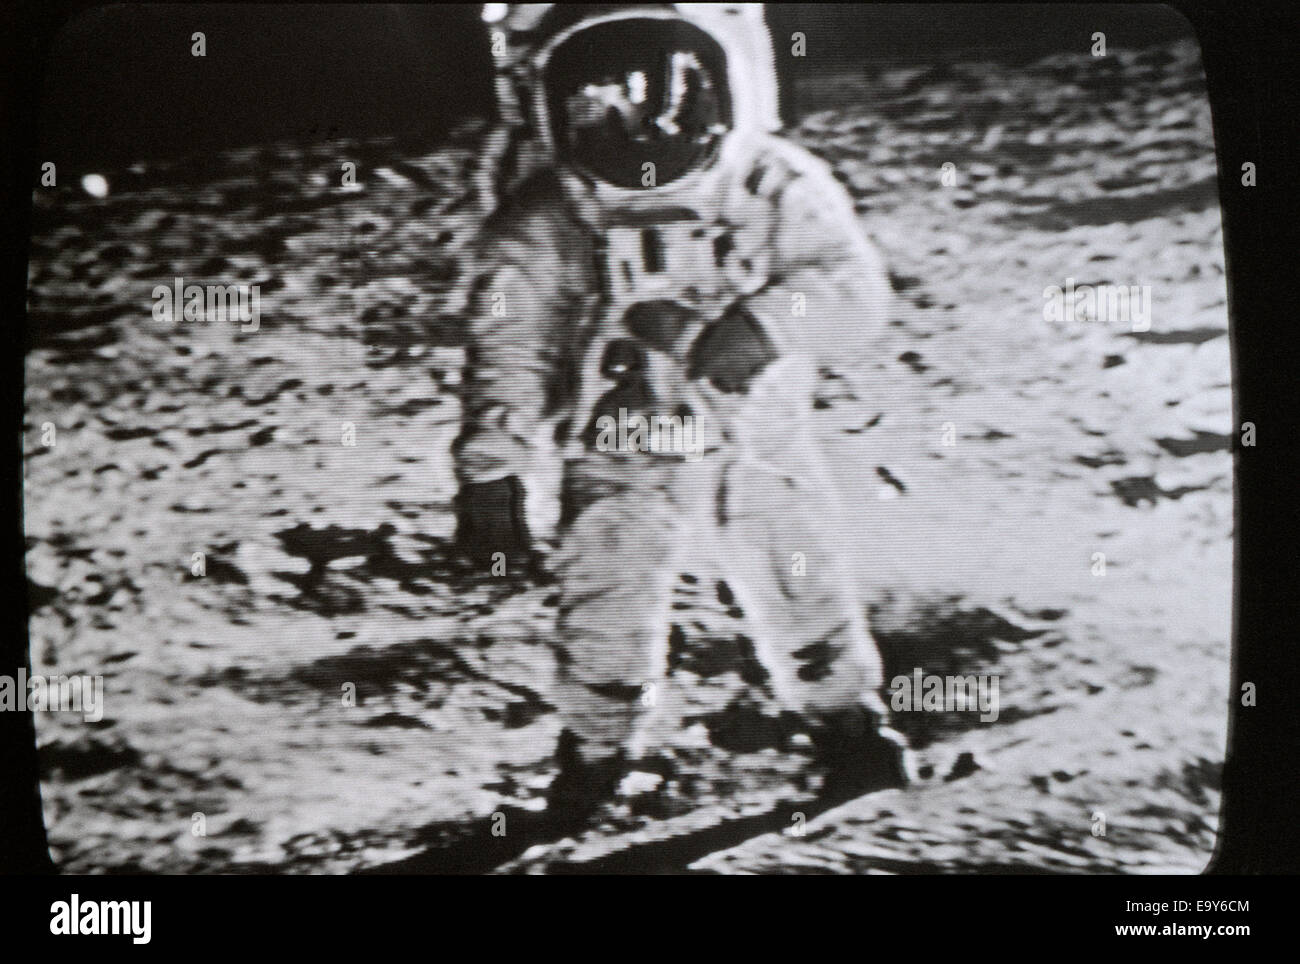 Moon landing 20 July 1969 Apollo 11 astronaut Neil Armstrong photographed standing on the surface of the moon in Stock Photo